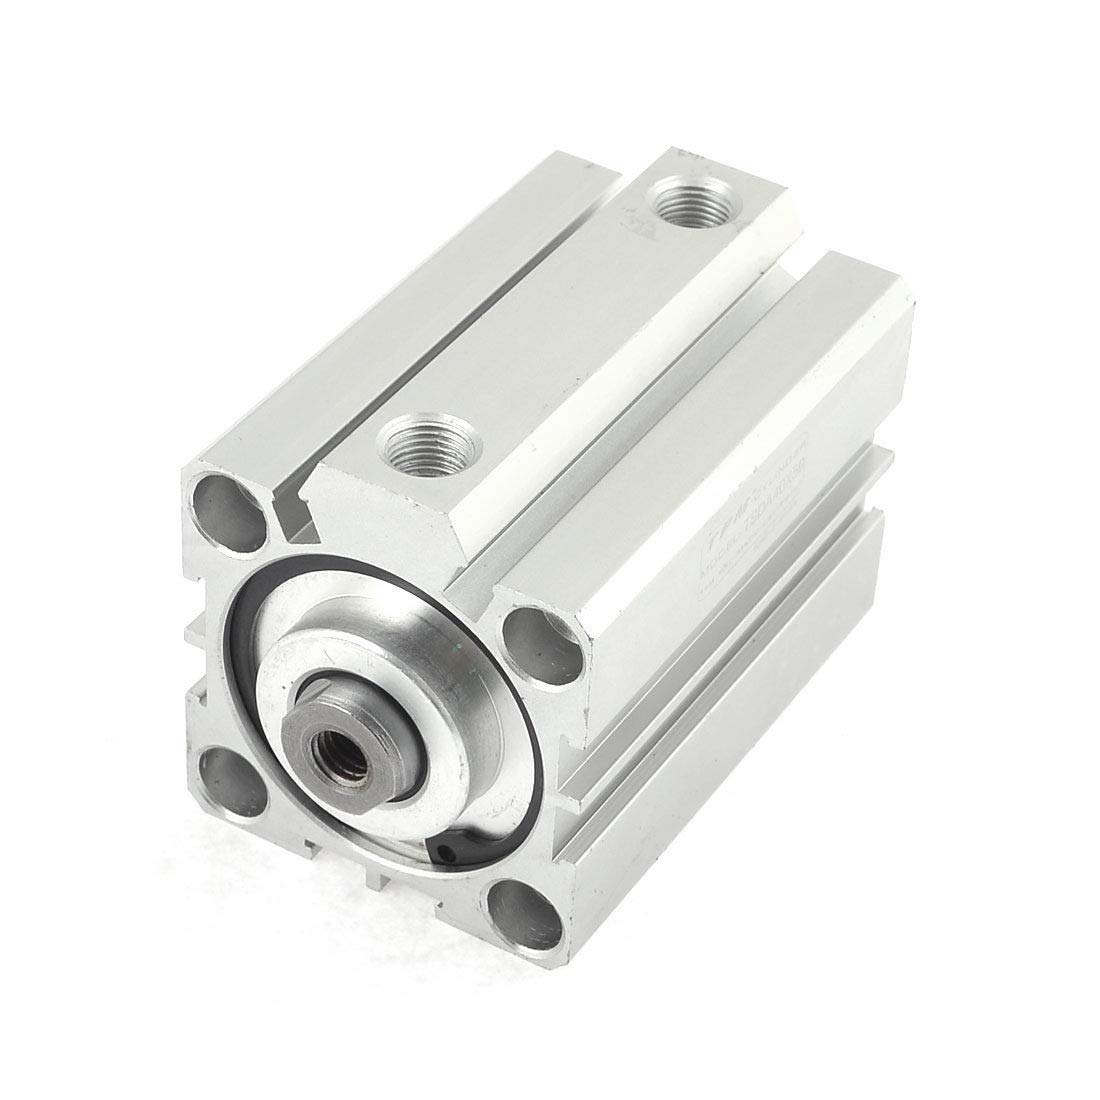 Fevas 1 Pcs 40mm Bore 35mm Stroke Stainless Steel Pneumatic Air Cylinder SDA40-35